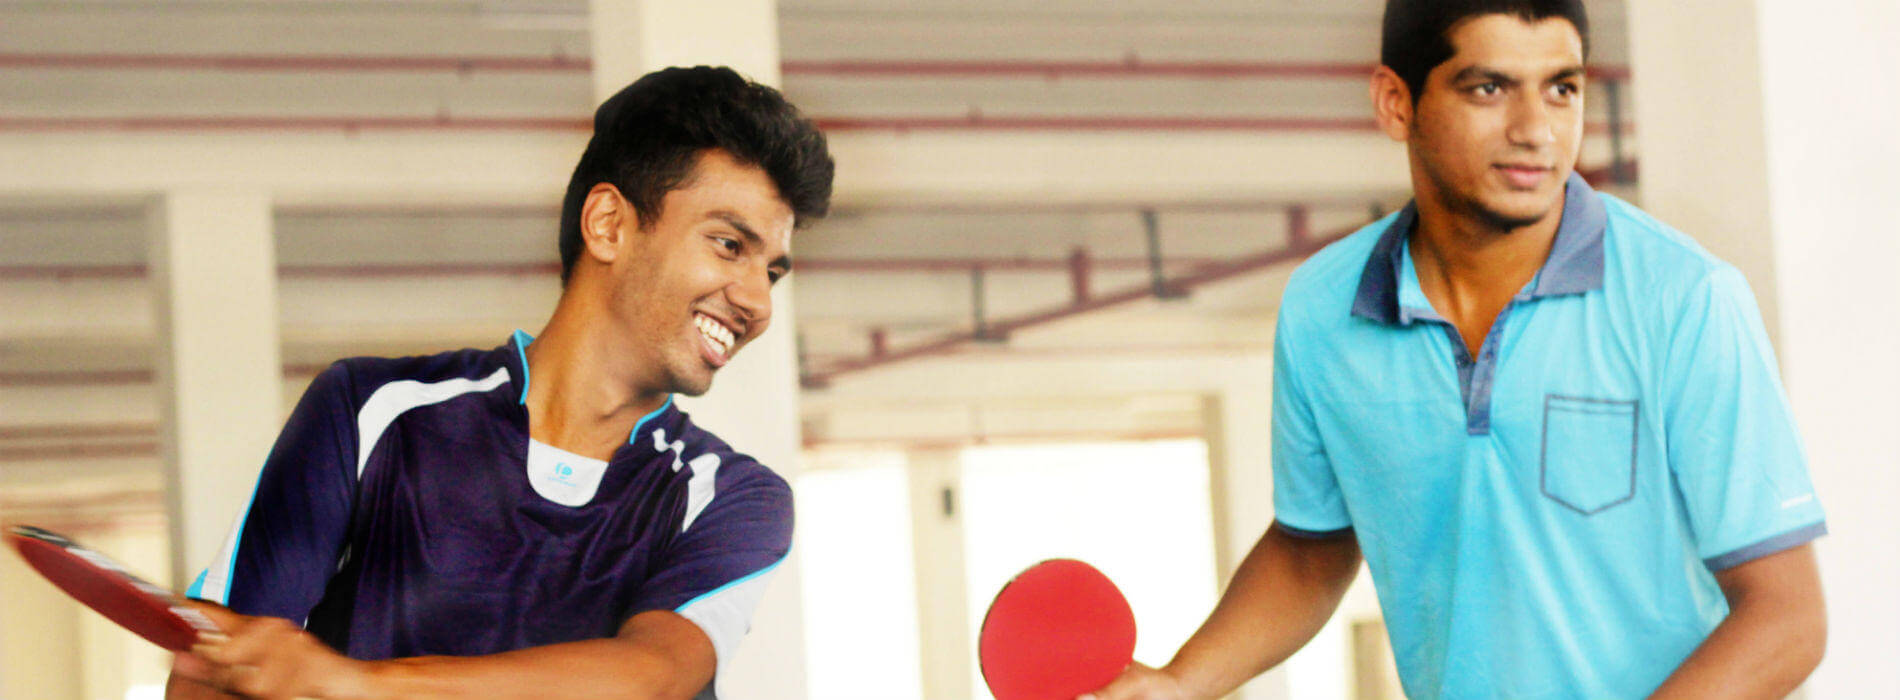 How to Choose Your Table Tennis Bat?